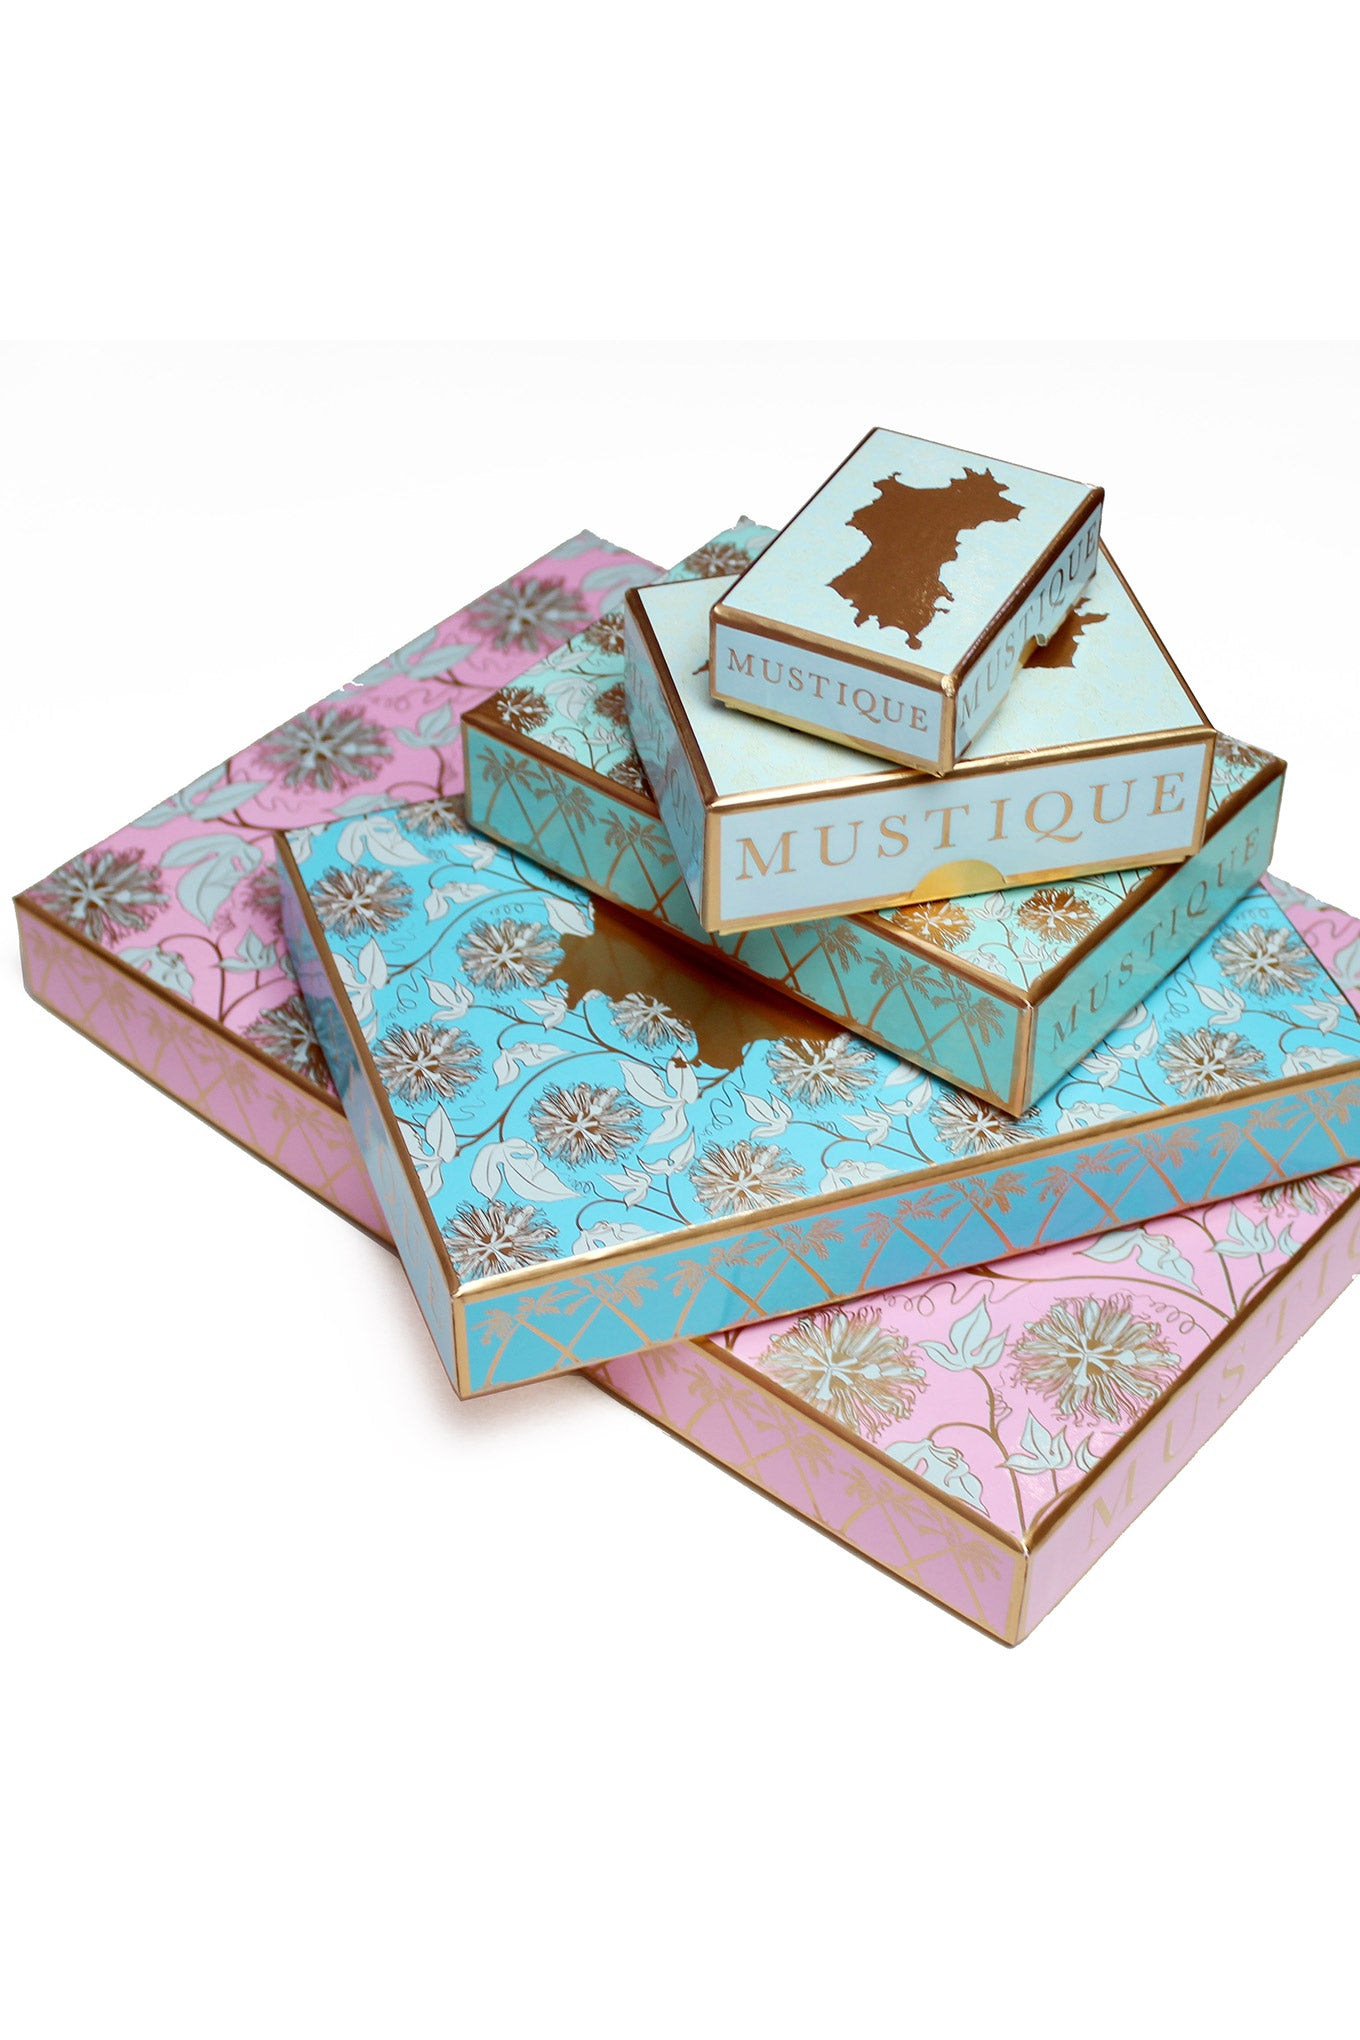 Lotty B present boxes